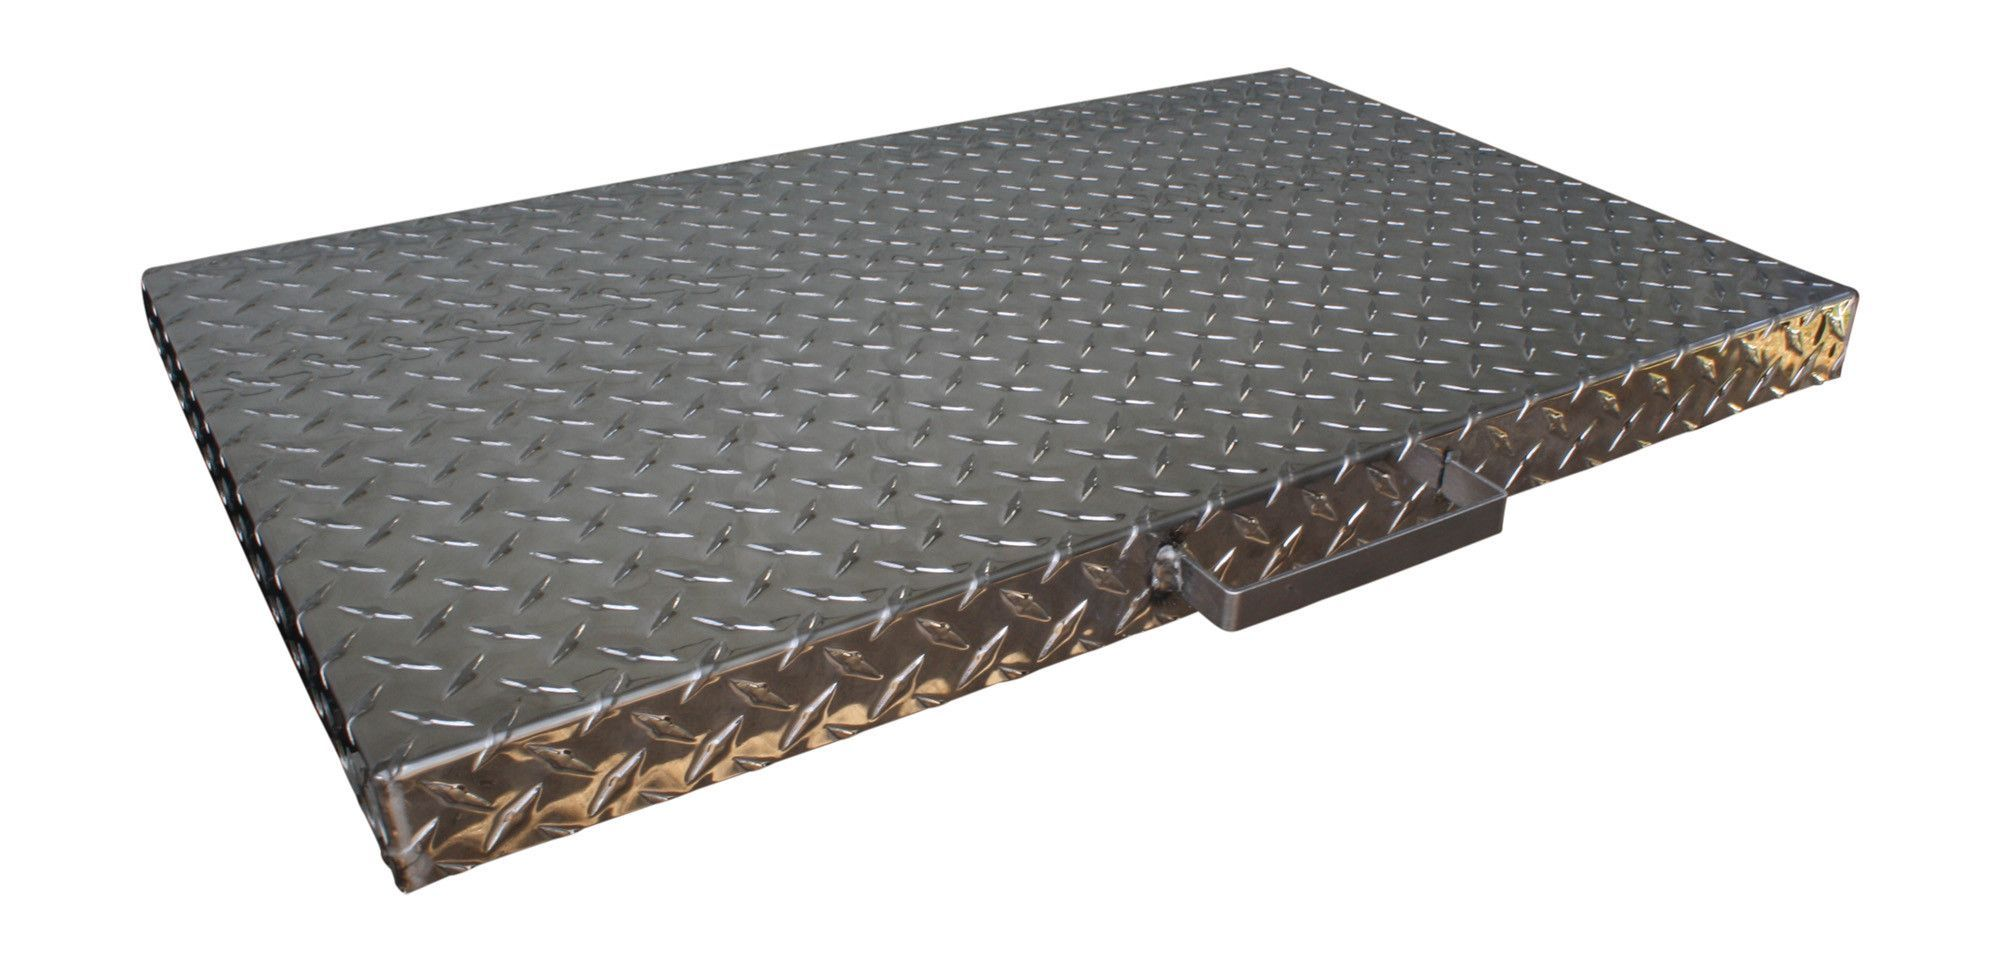 Griddle Cover Diamond Plate Aluminum For 28 Inch Blackstone Griddle Blackstone Griddle Diamond Plate Griddles